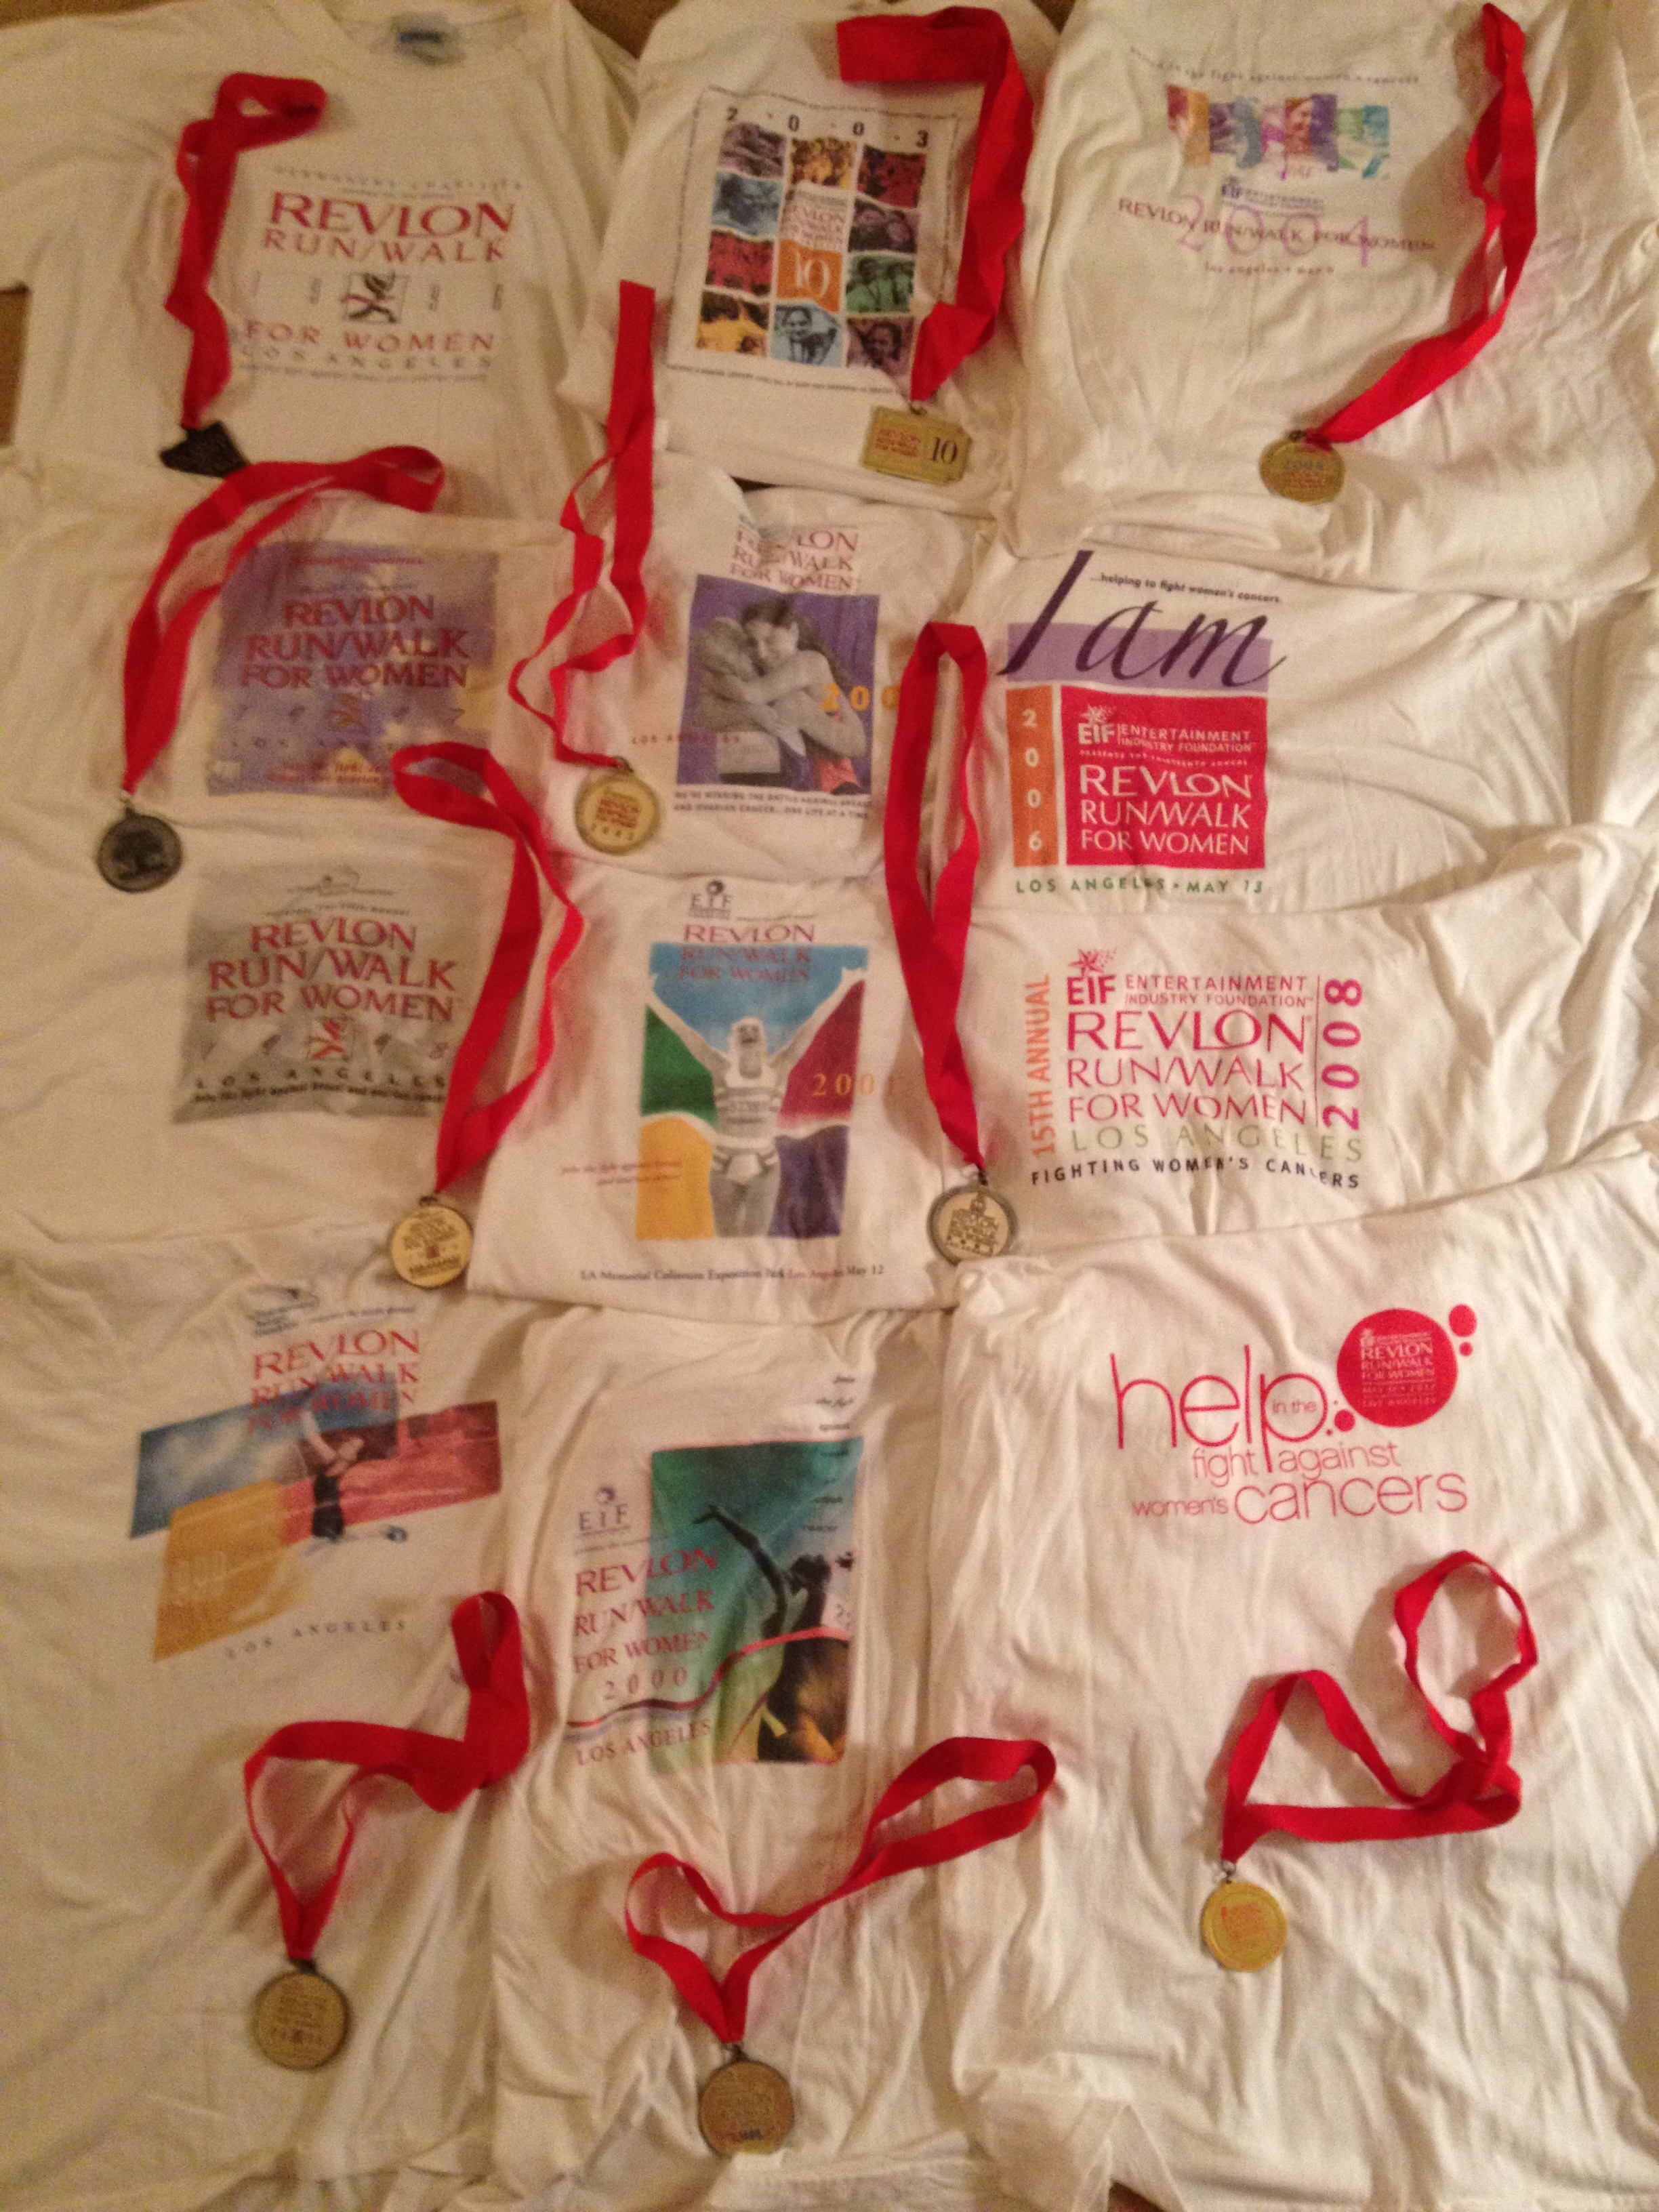 IAmMsPrissy™ Medals as a Revlon Participant